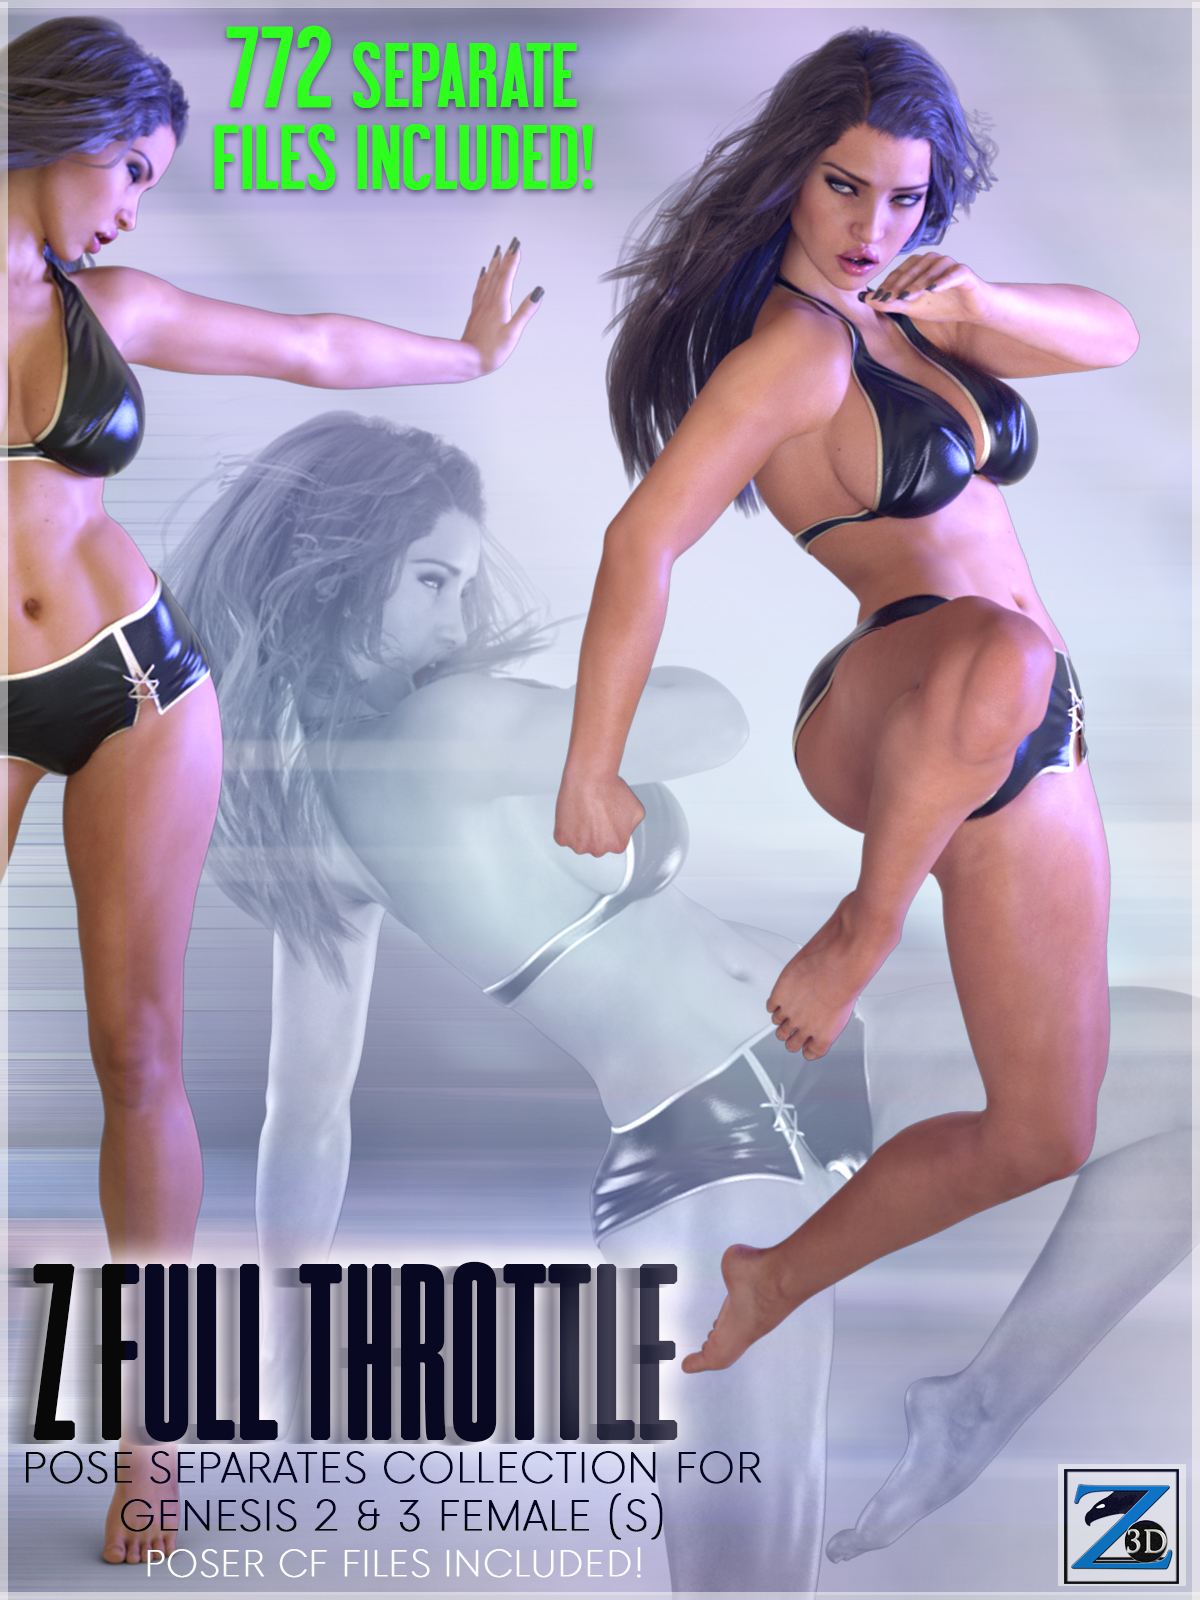 Z Full Throttle - Pose Separates Collection for Genesis 2 & 3 Female(s)